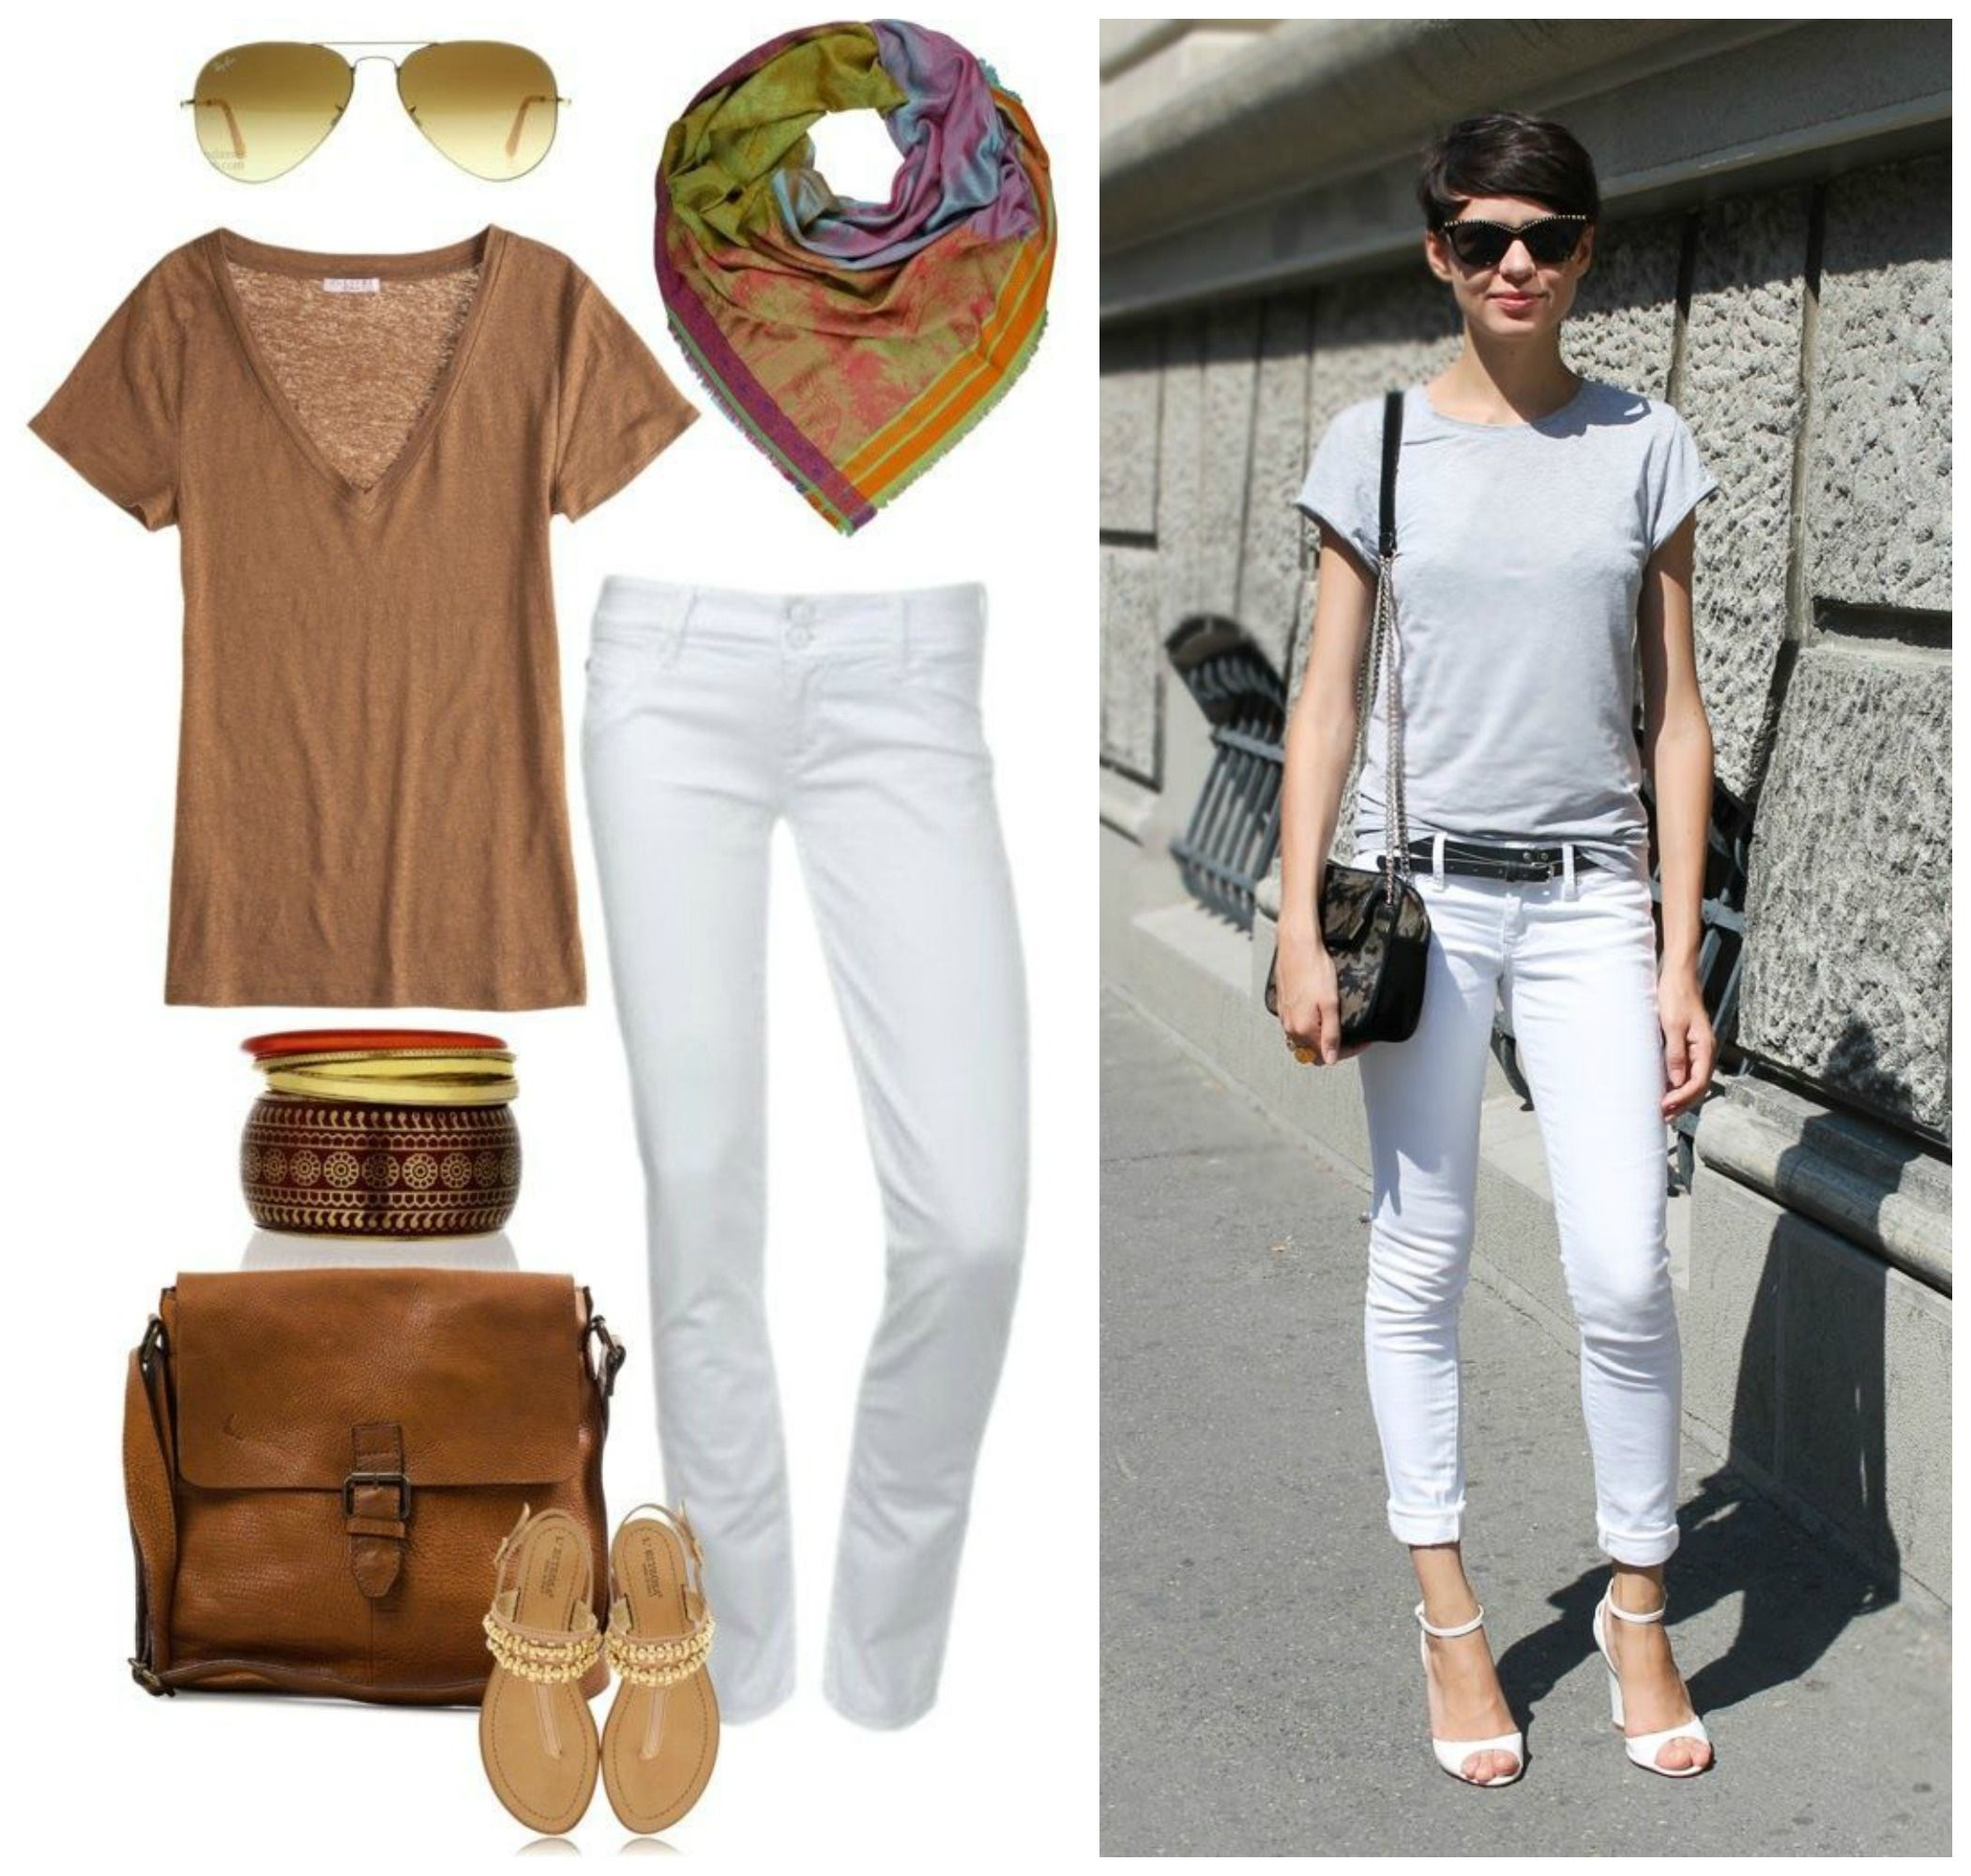 Outfit ideas for white jeans